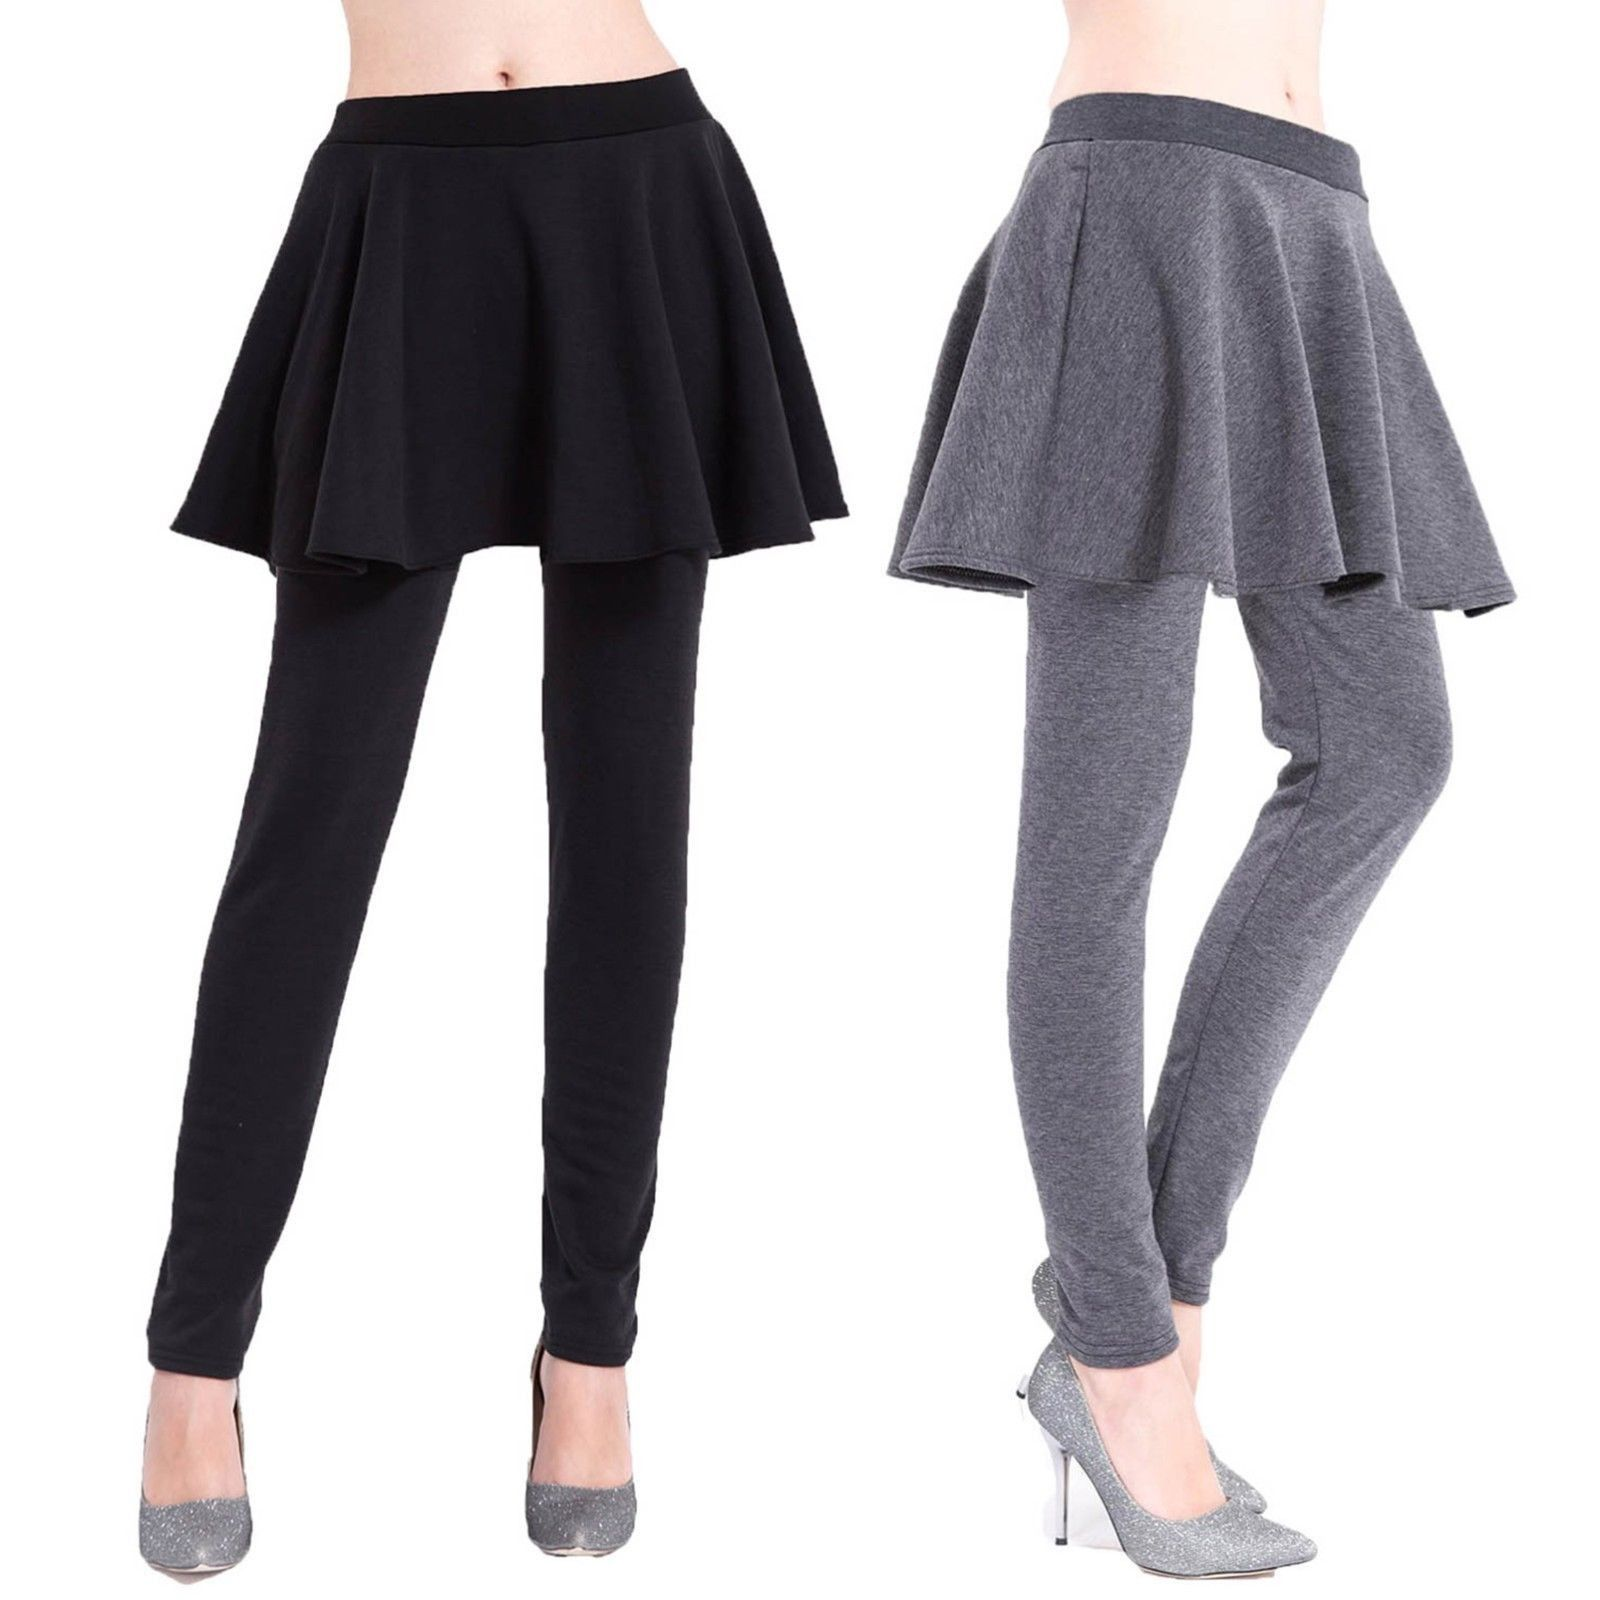 Fashion Skirt-designed Leggings